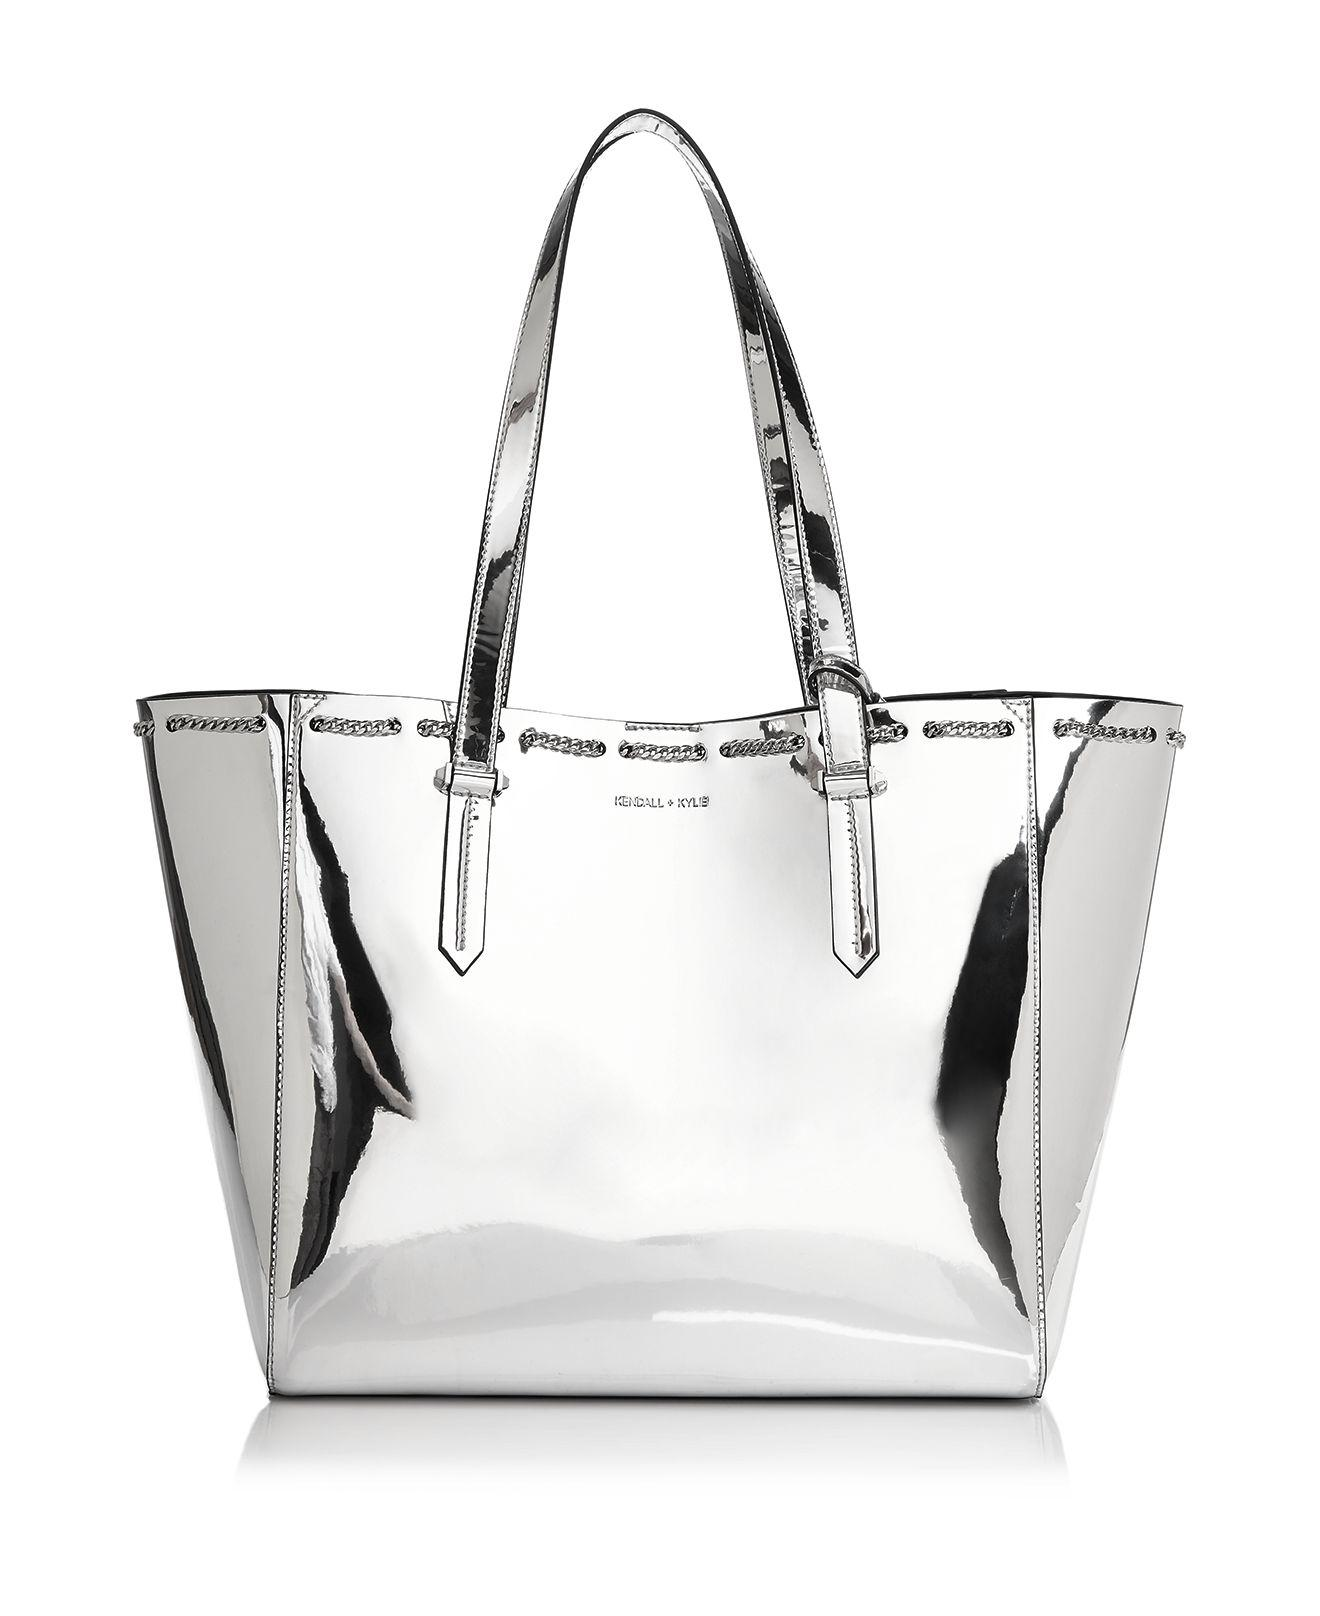 53b9015fa57b Lyst - Kendall + Kylie Izzy Chain Trim Metallic Tote in Metallic